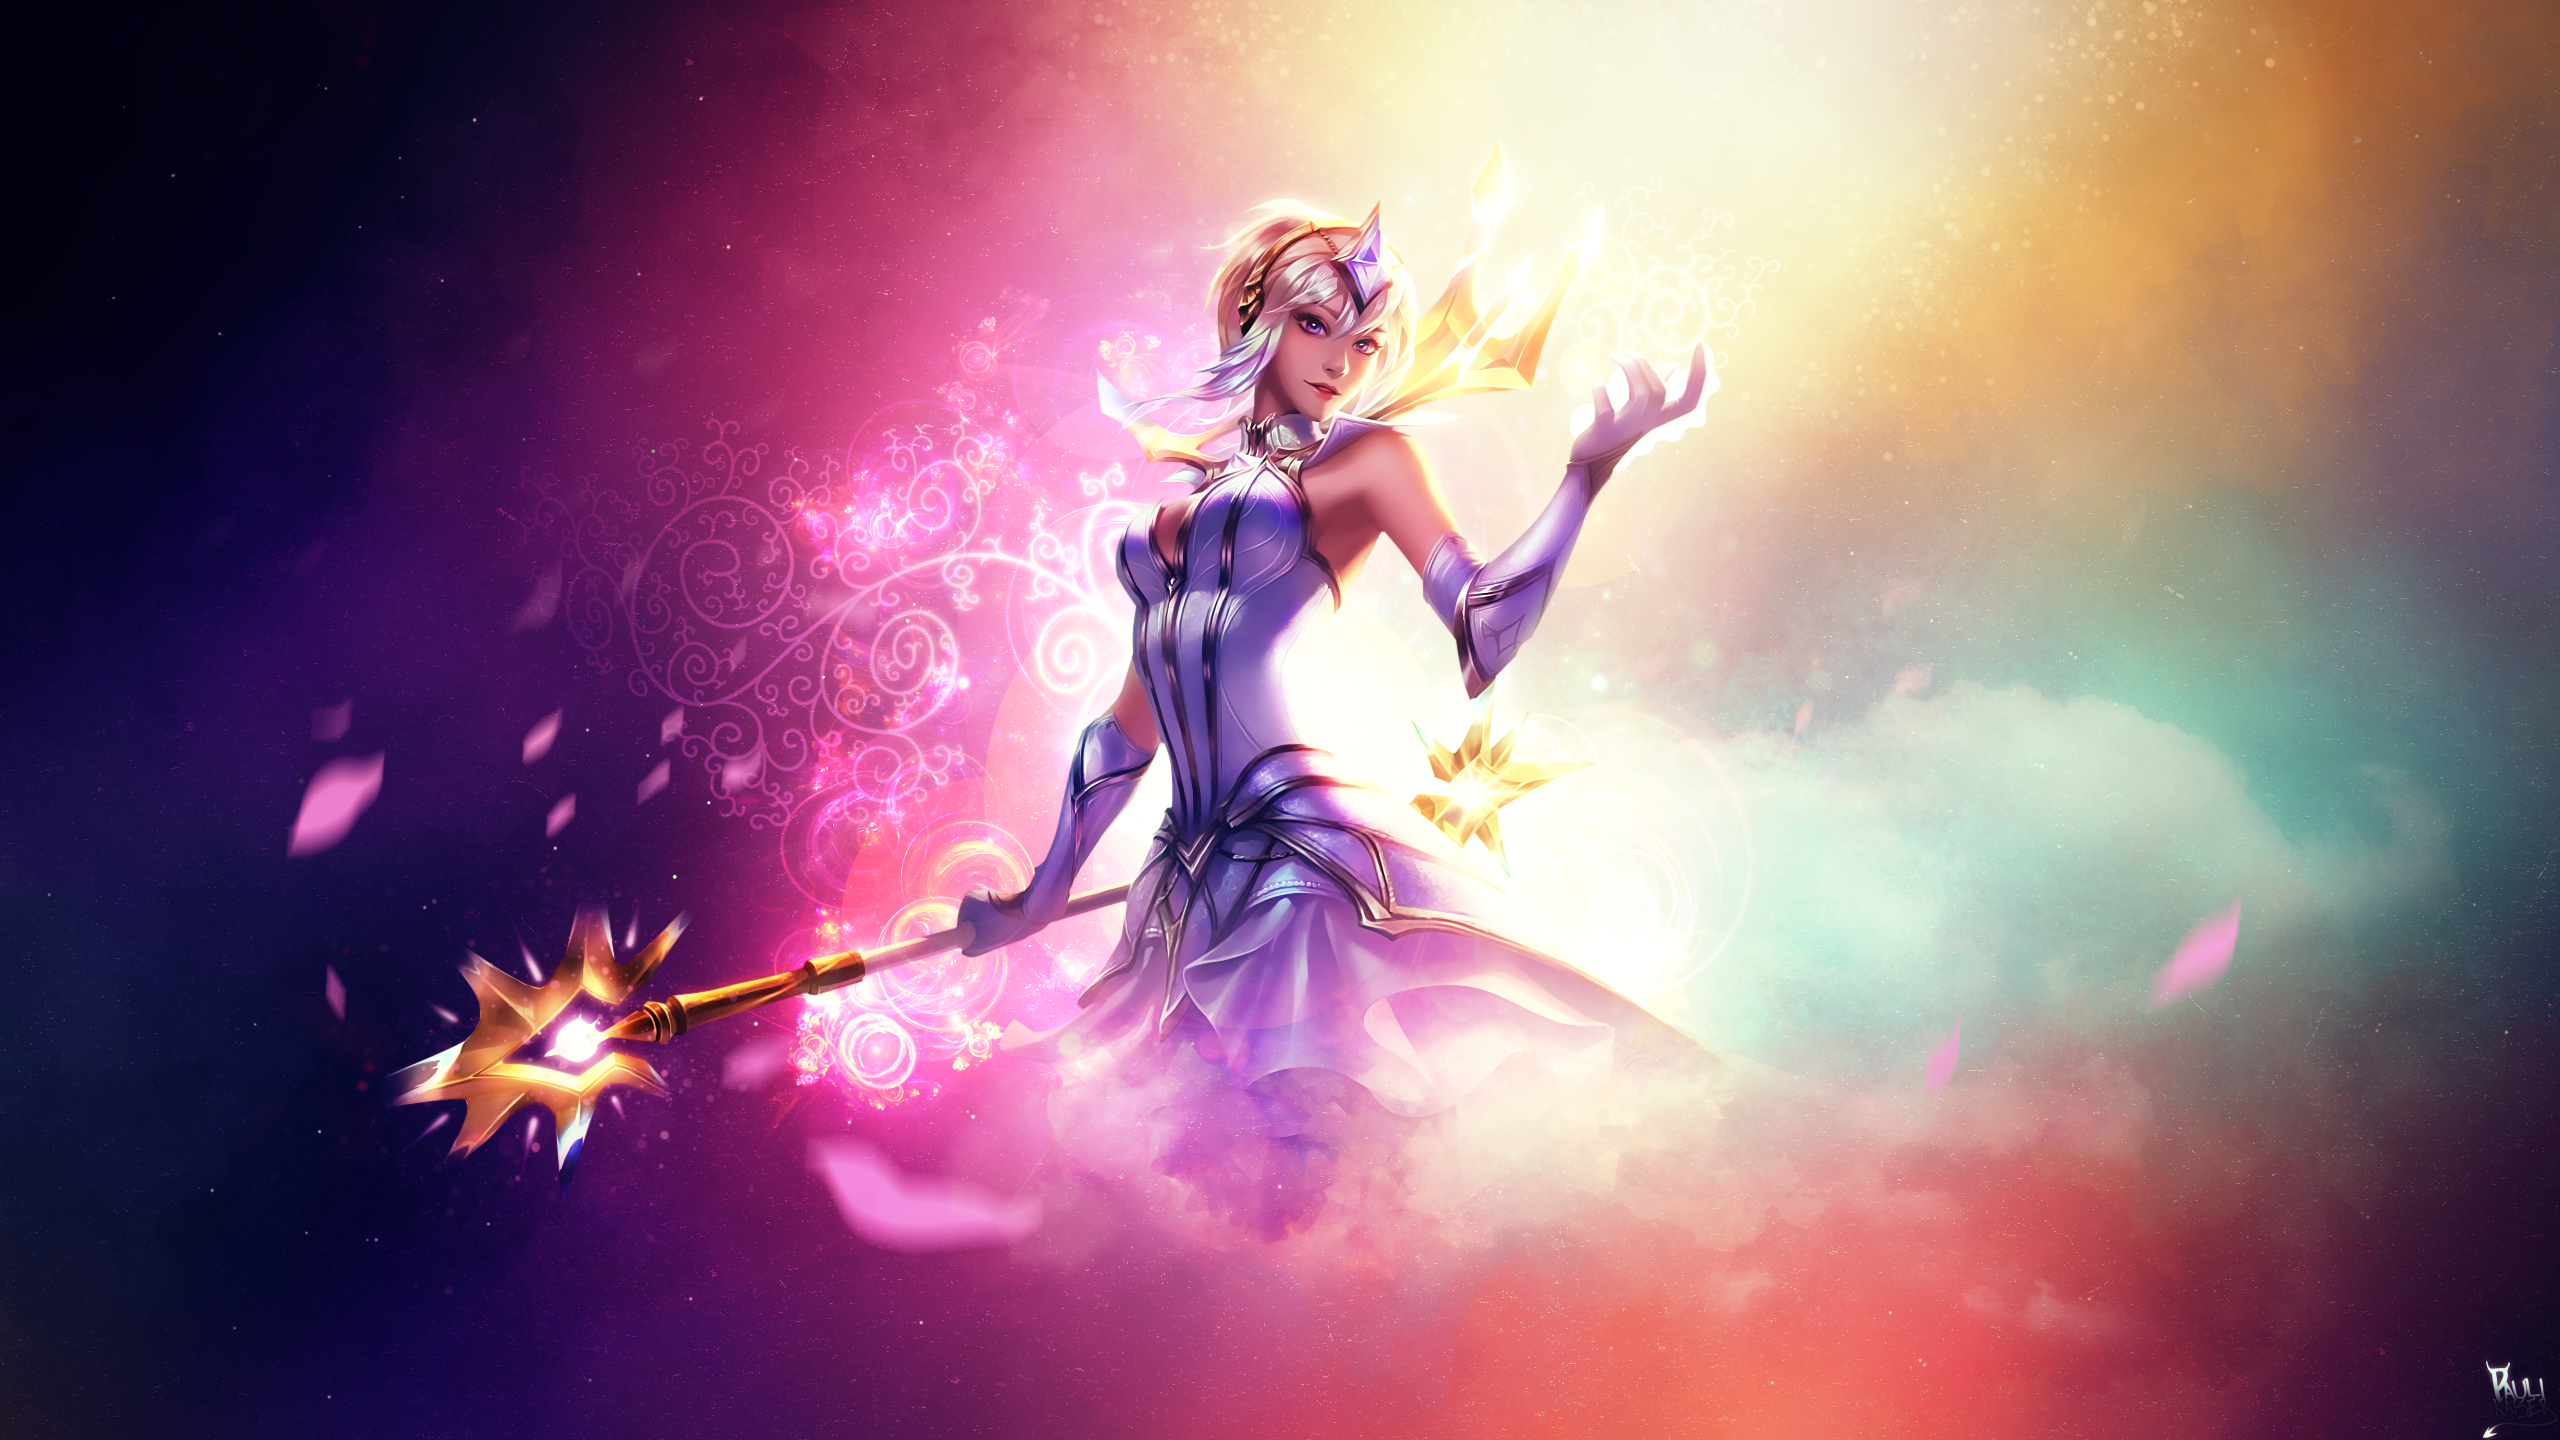 League Of Legends Elementalist Lux Wallpaper High Quality Resolution Is Cool Wallpapers